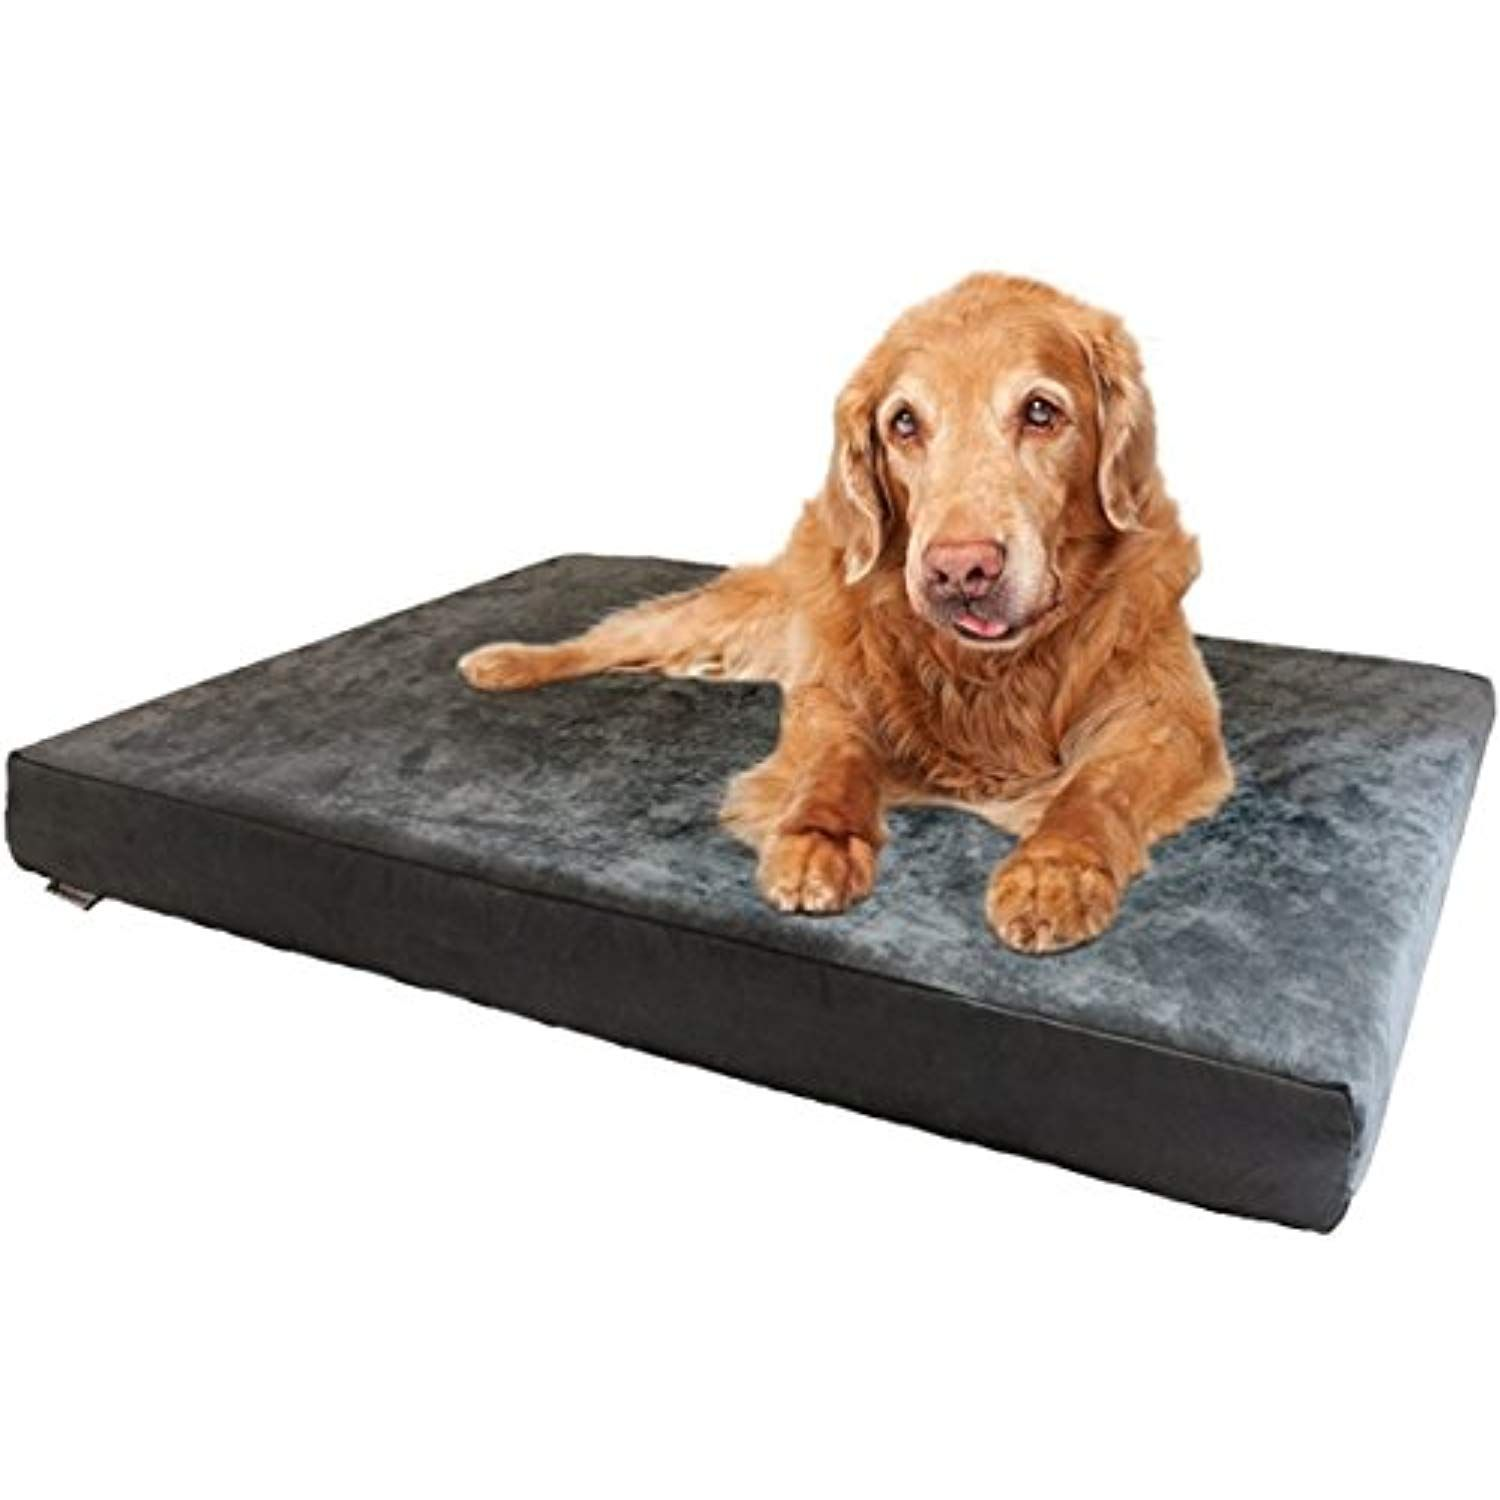 Dogbed4less Xxl Orthopedic Gel Infused Cooling Memory Foam Dog Bed